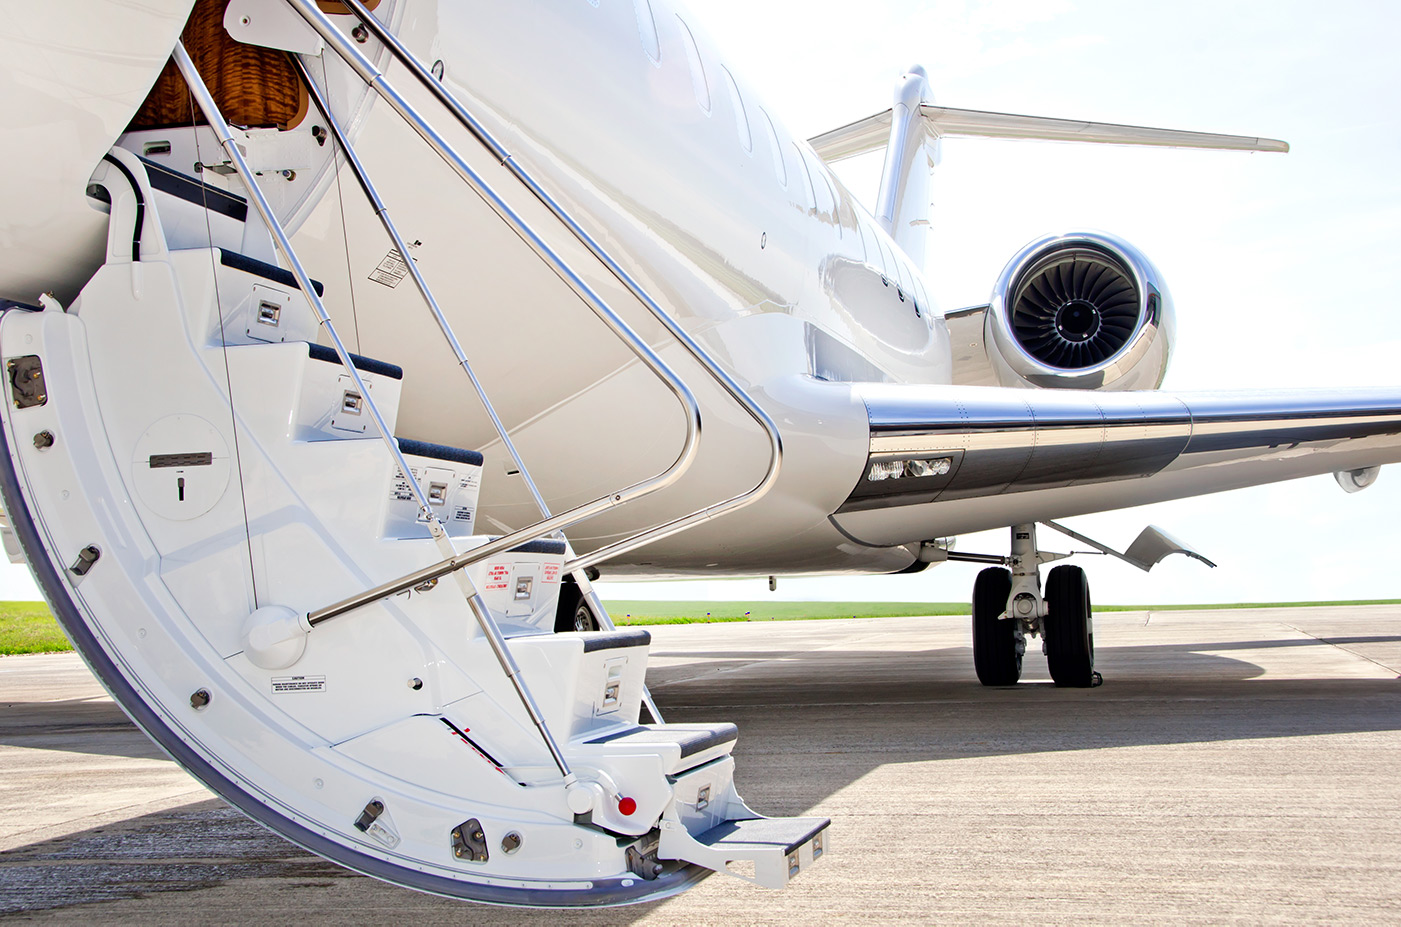 world's best private jet